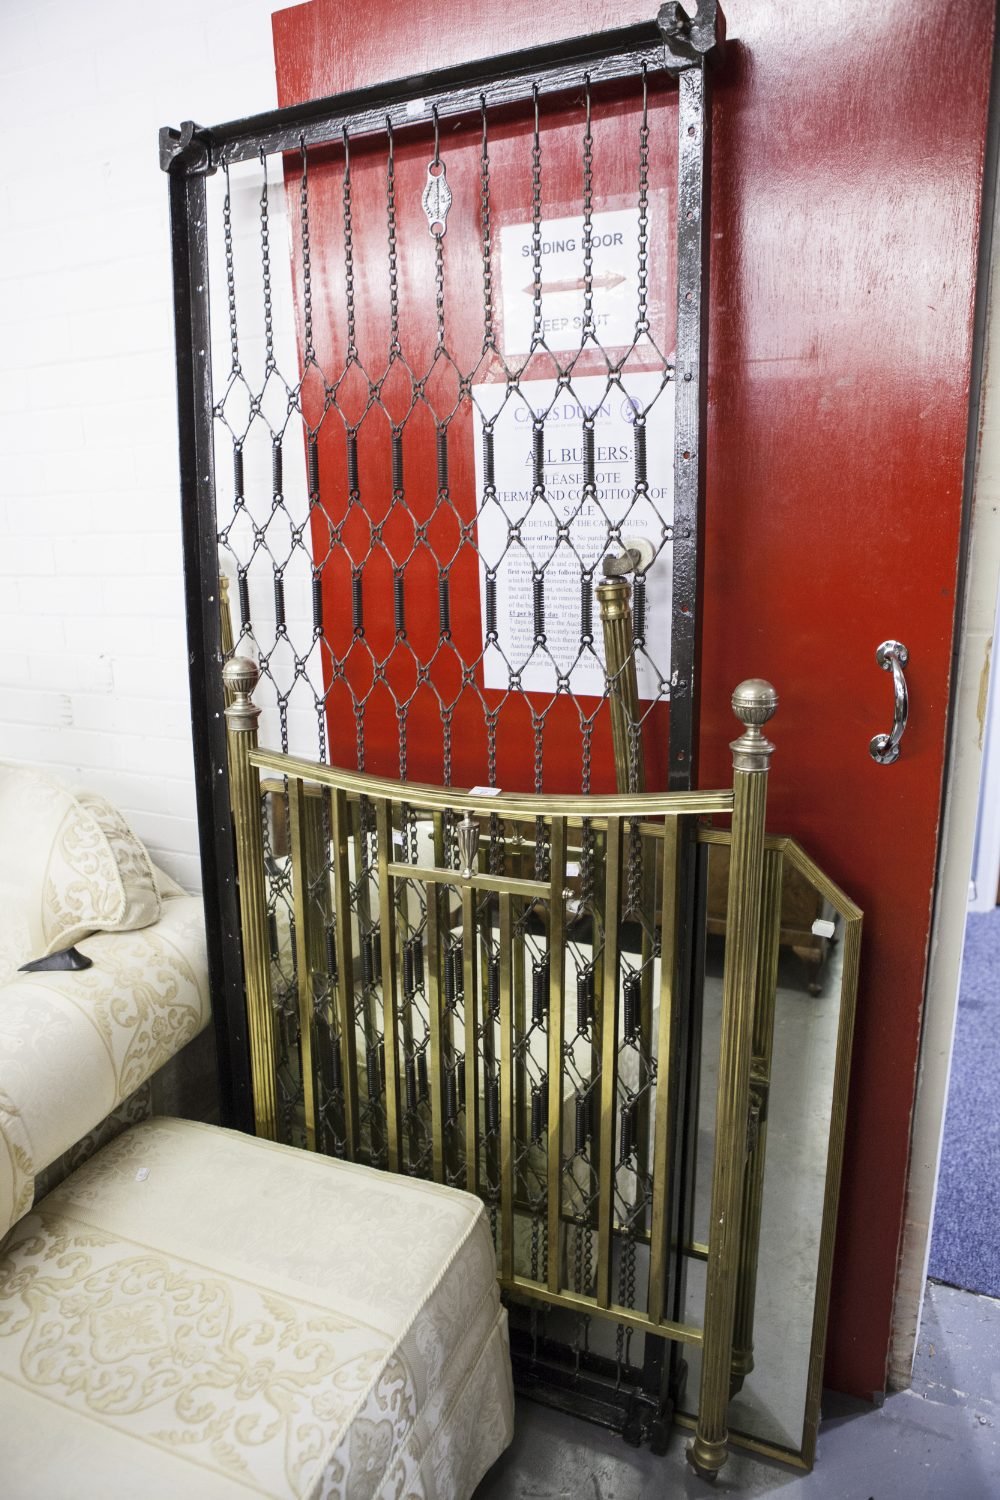 Lot 27 - LATE NINETEENTH/EARLY TWENTIETH CENTURY POLISHED BRASS SINGLE BEDSTEAD in the classical taste